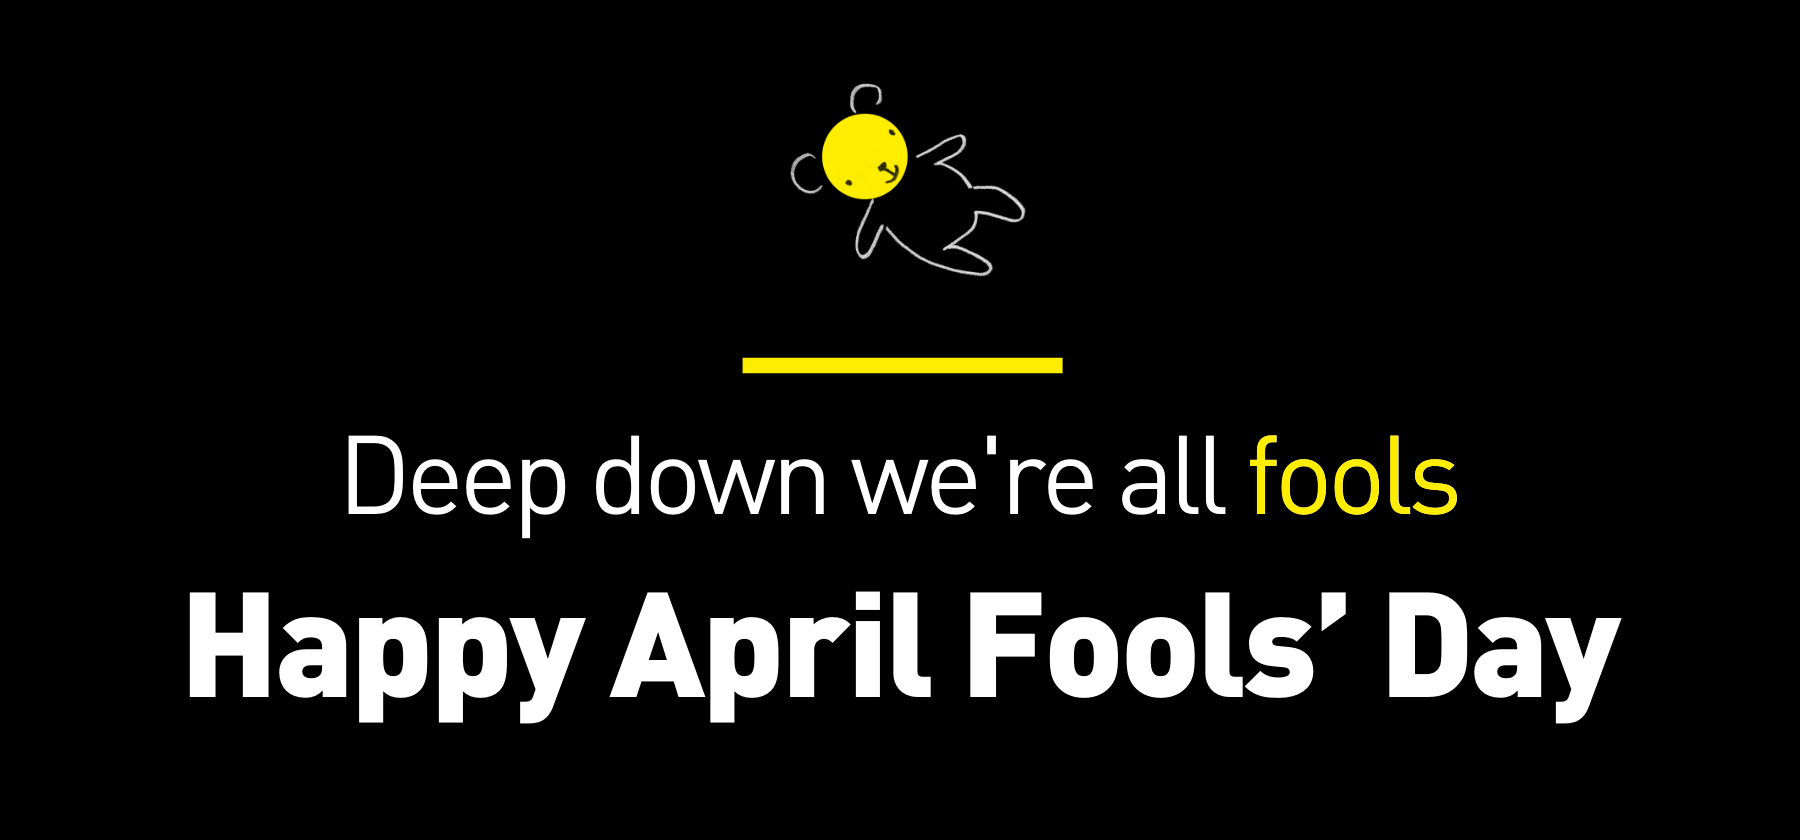 Deep down we're all fools